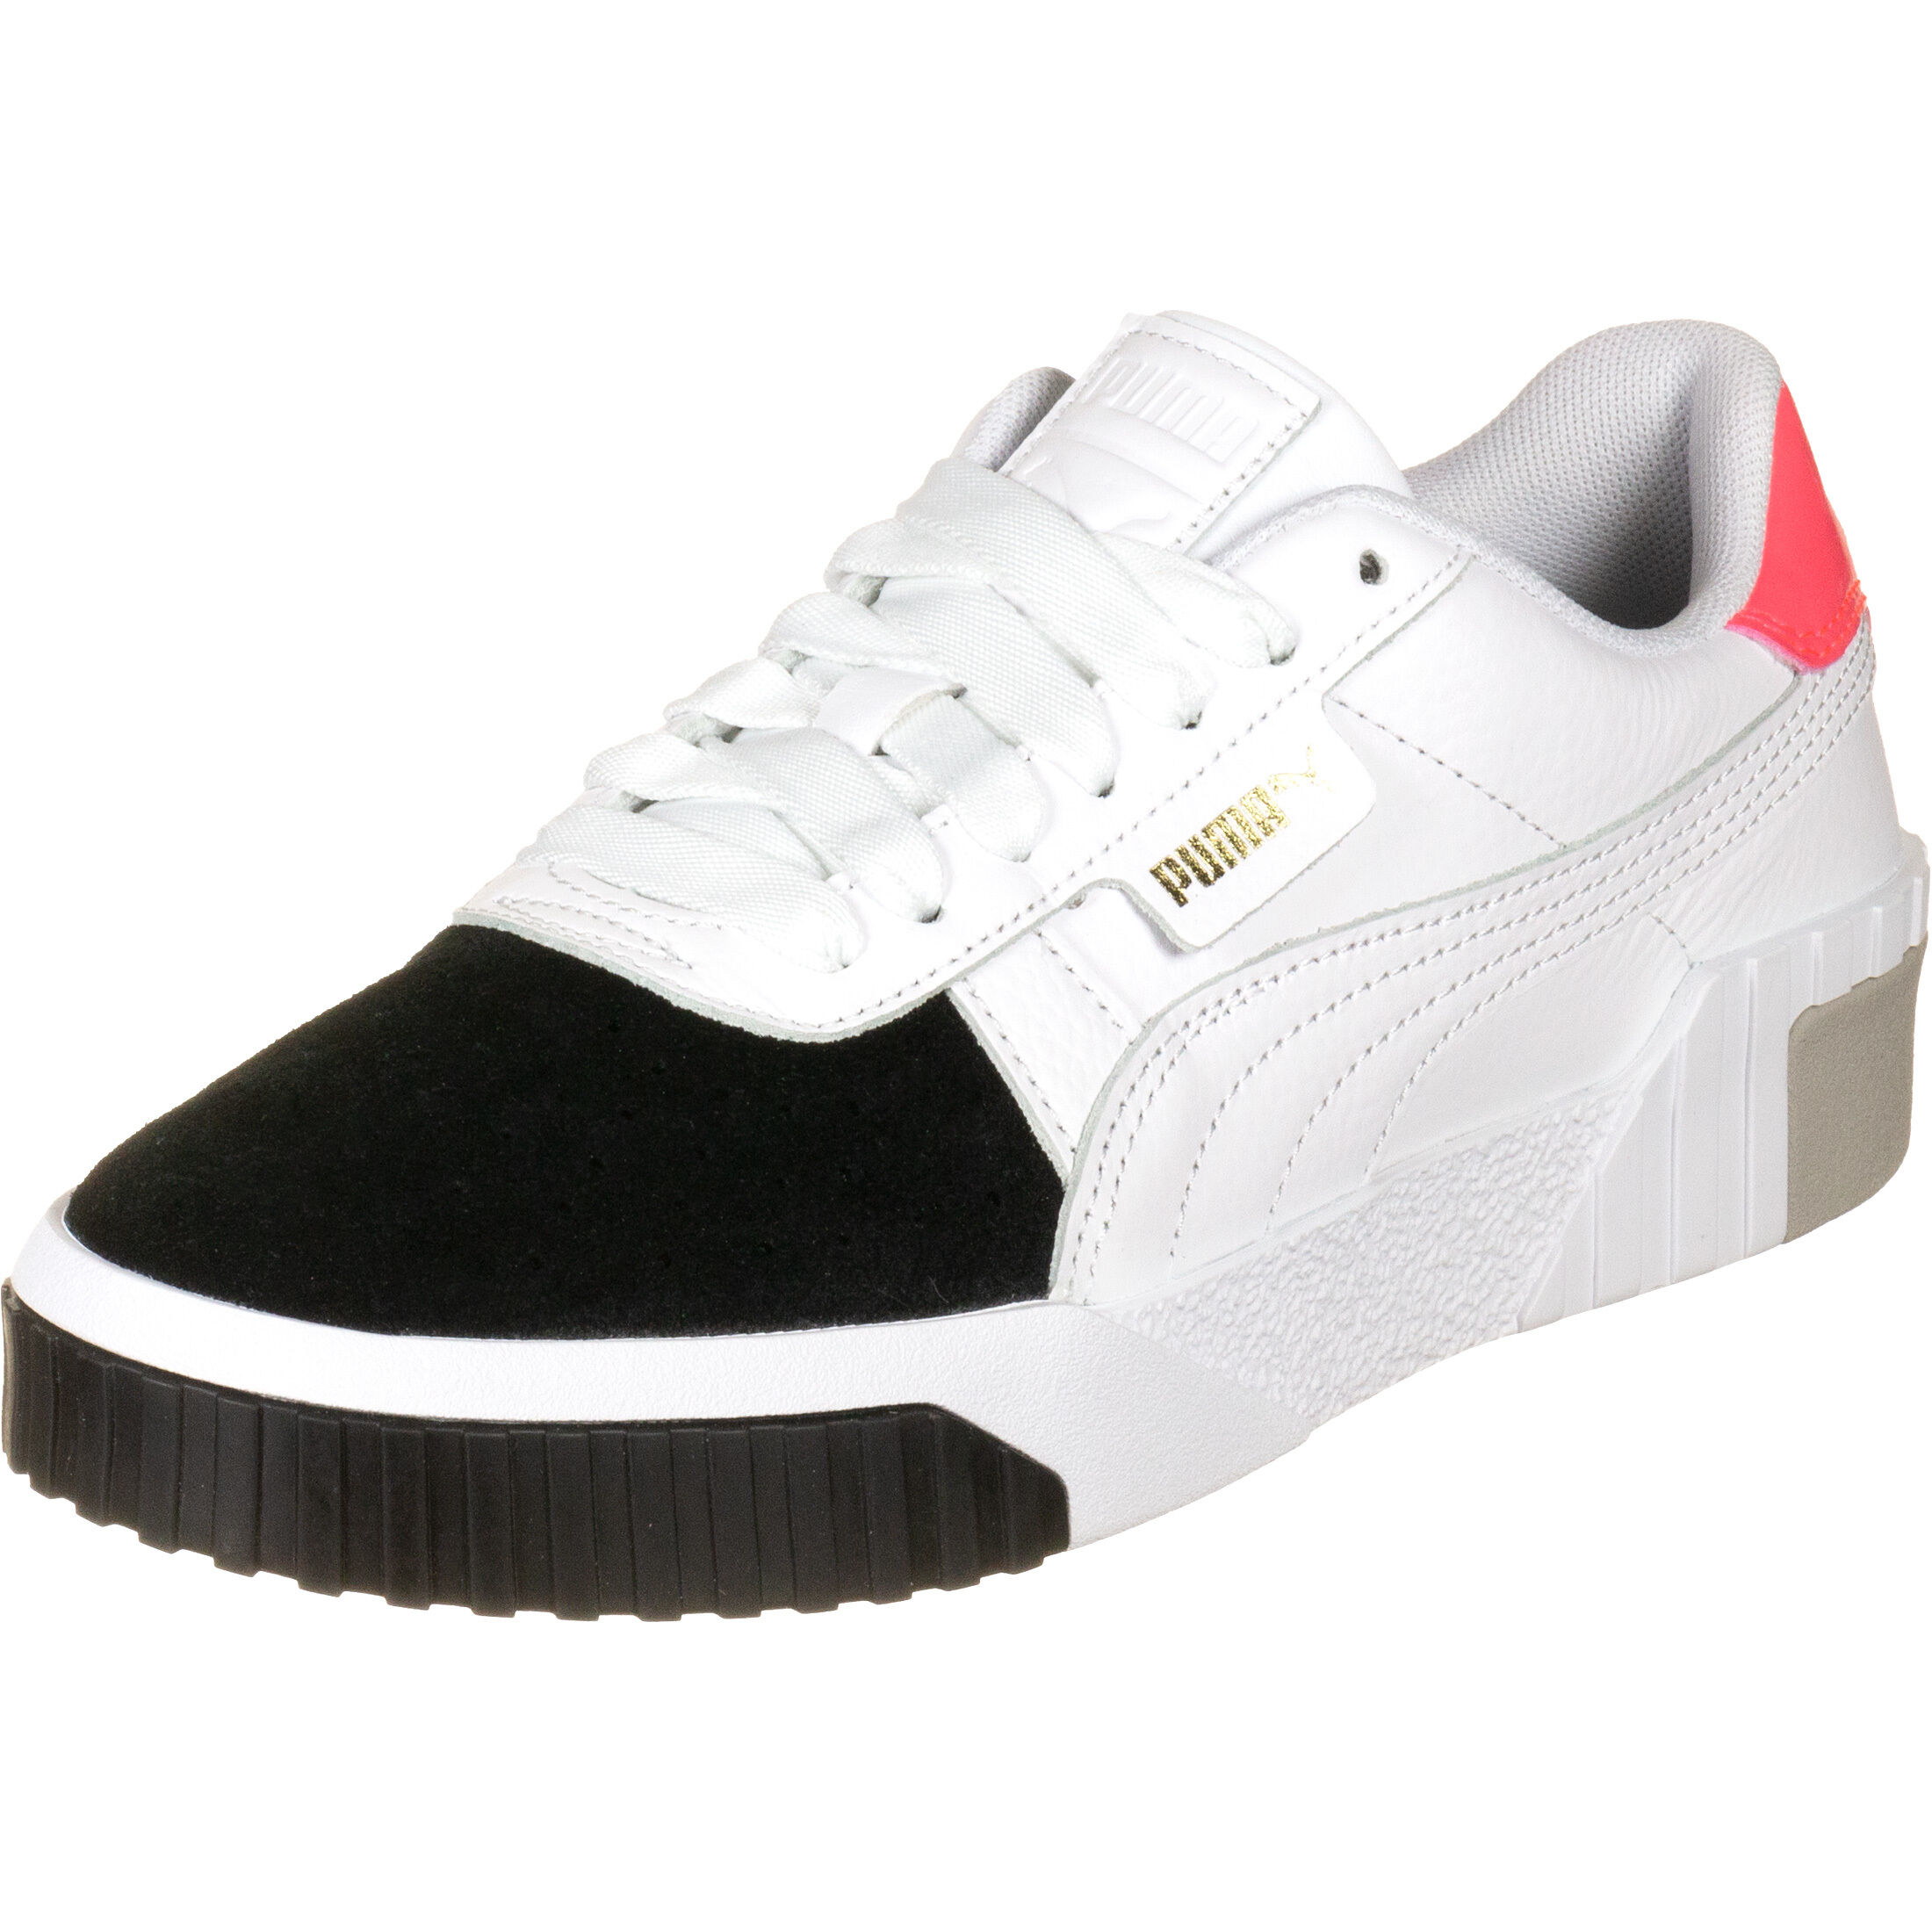 Puma Sneaker | Sneaker Shop Lifestyle bei OUTFITTER